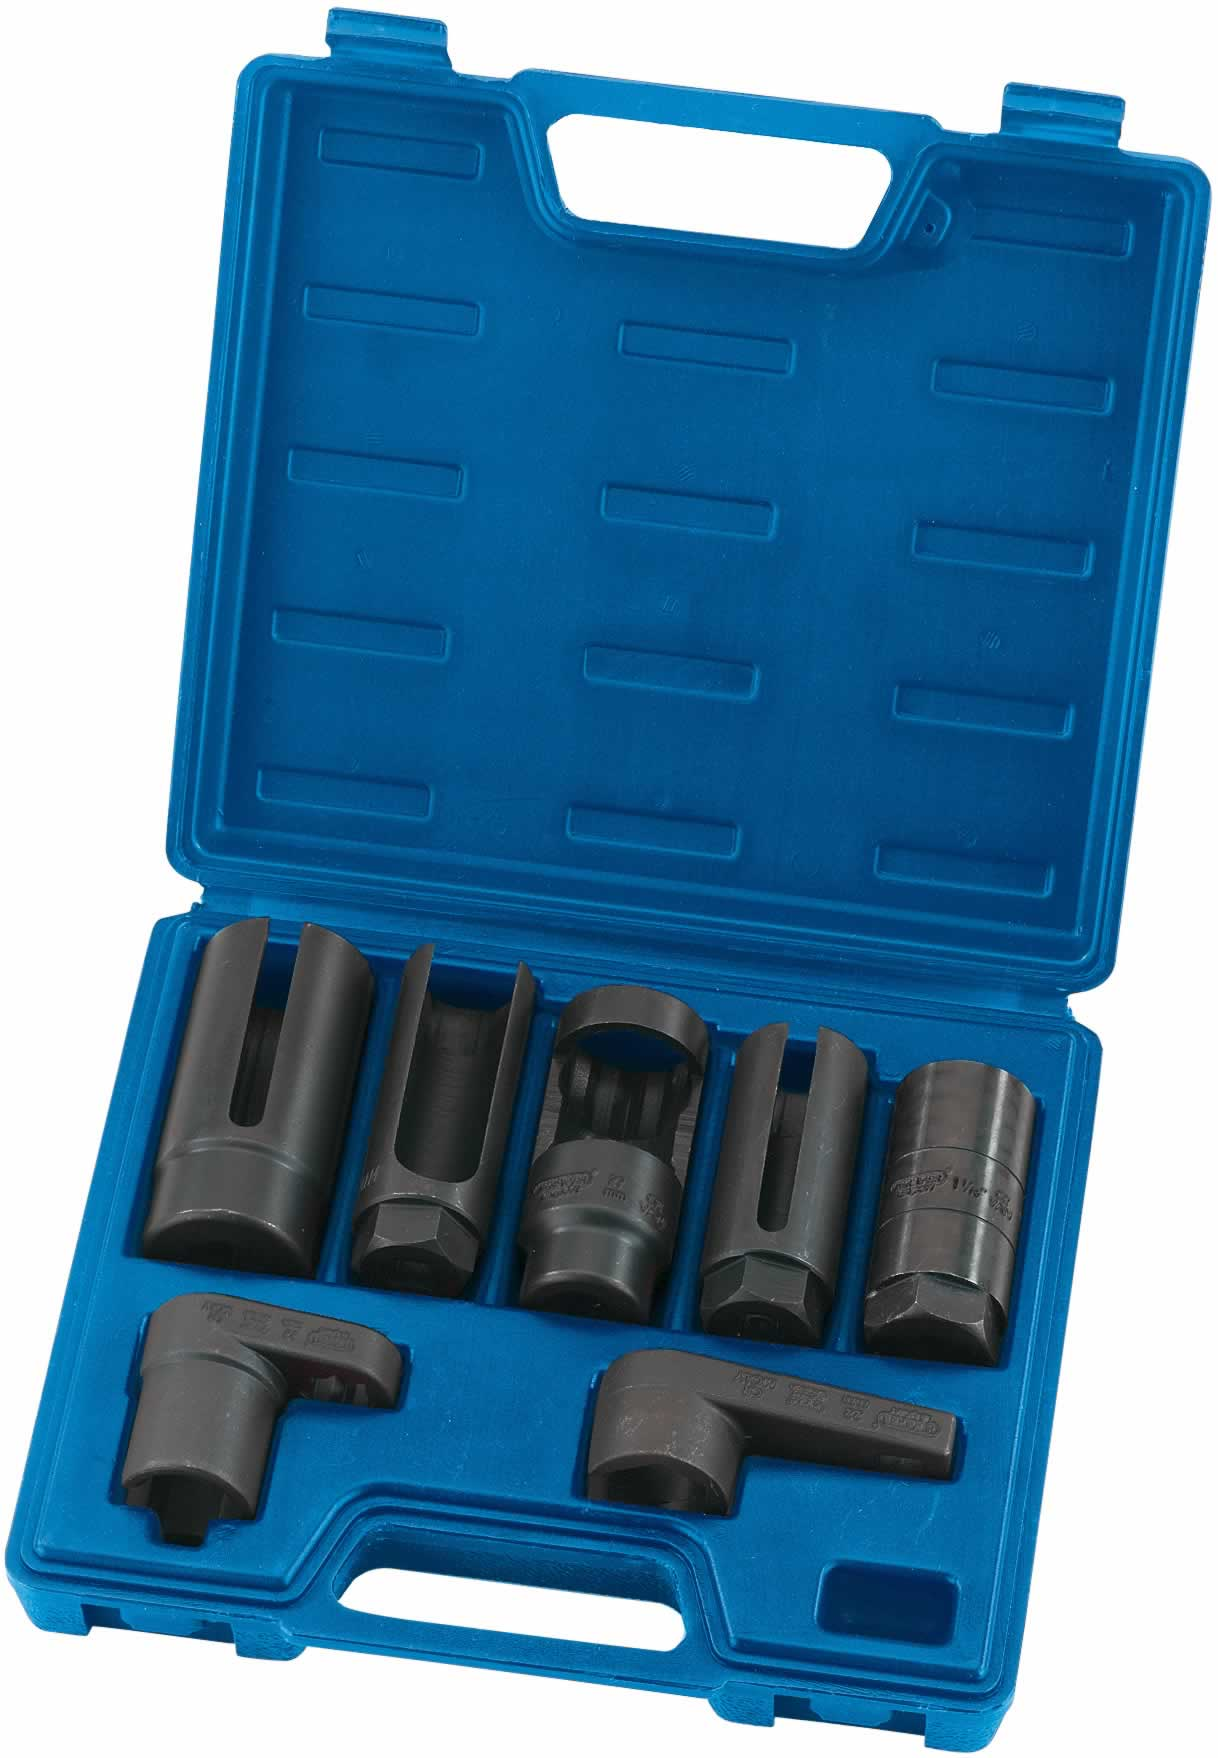 "EXPERT 3/3 AND 1/2"" SQ. DR. 'LAMBDA' OR OXYGEN SENSOR SOCKET SET"